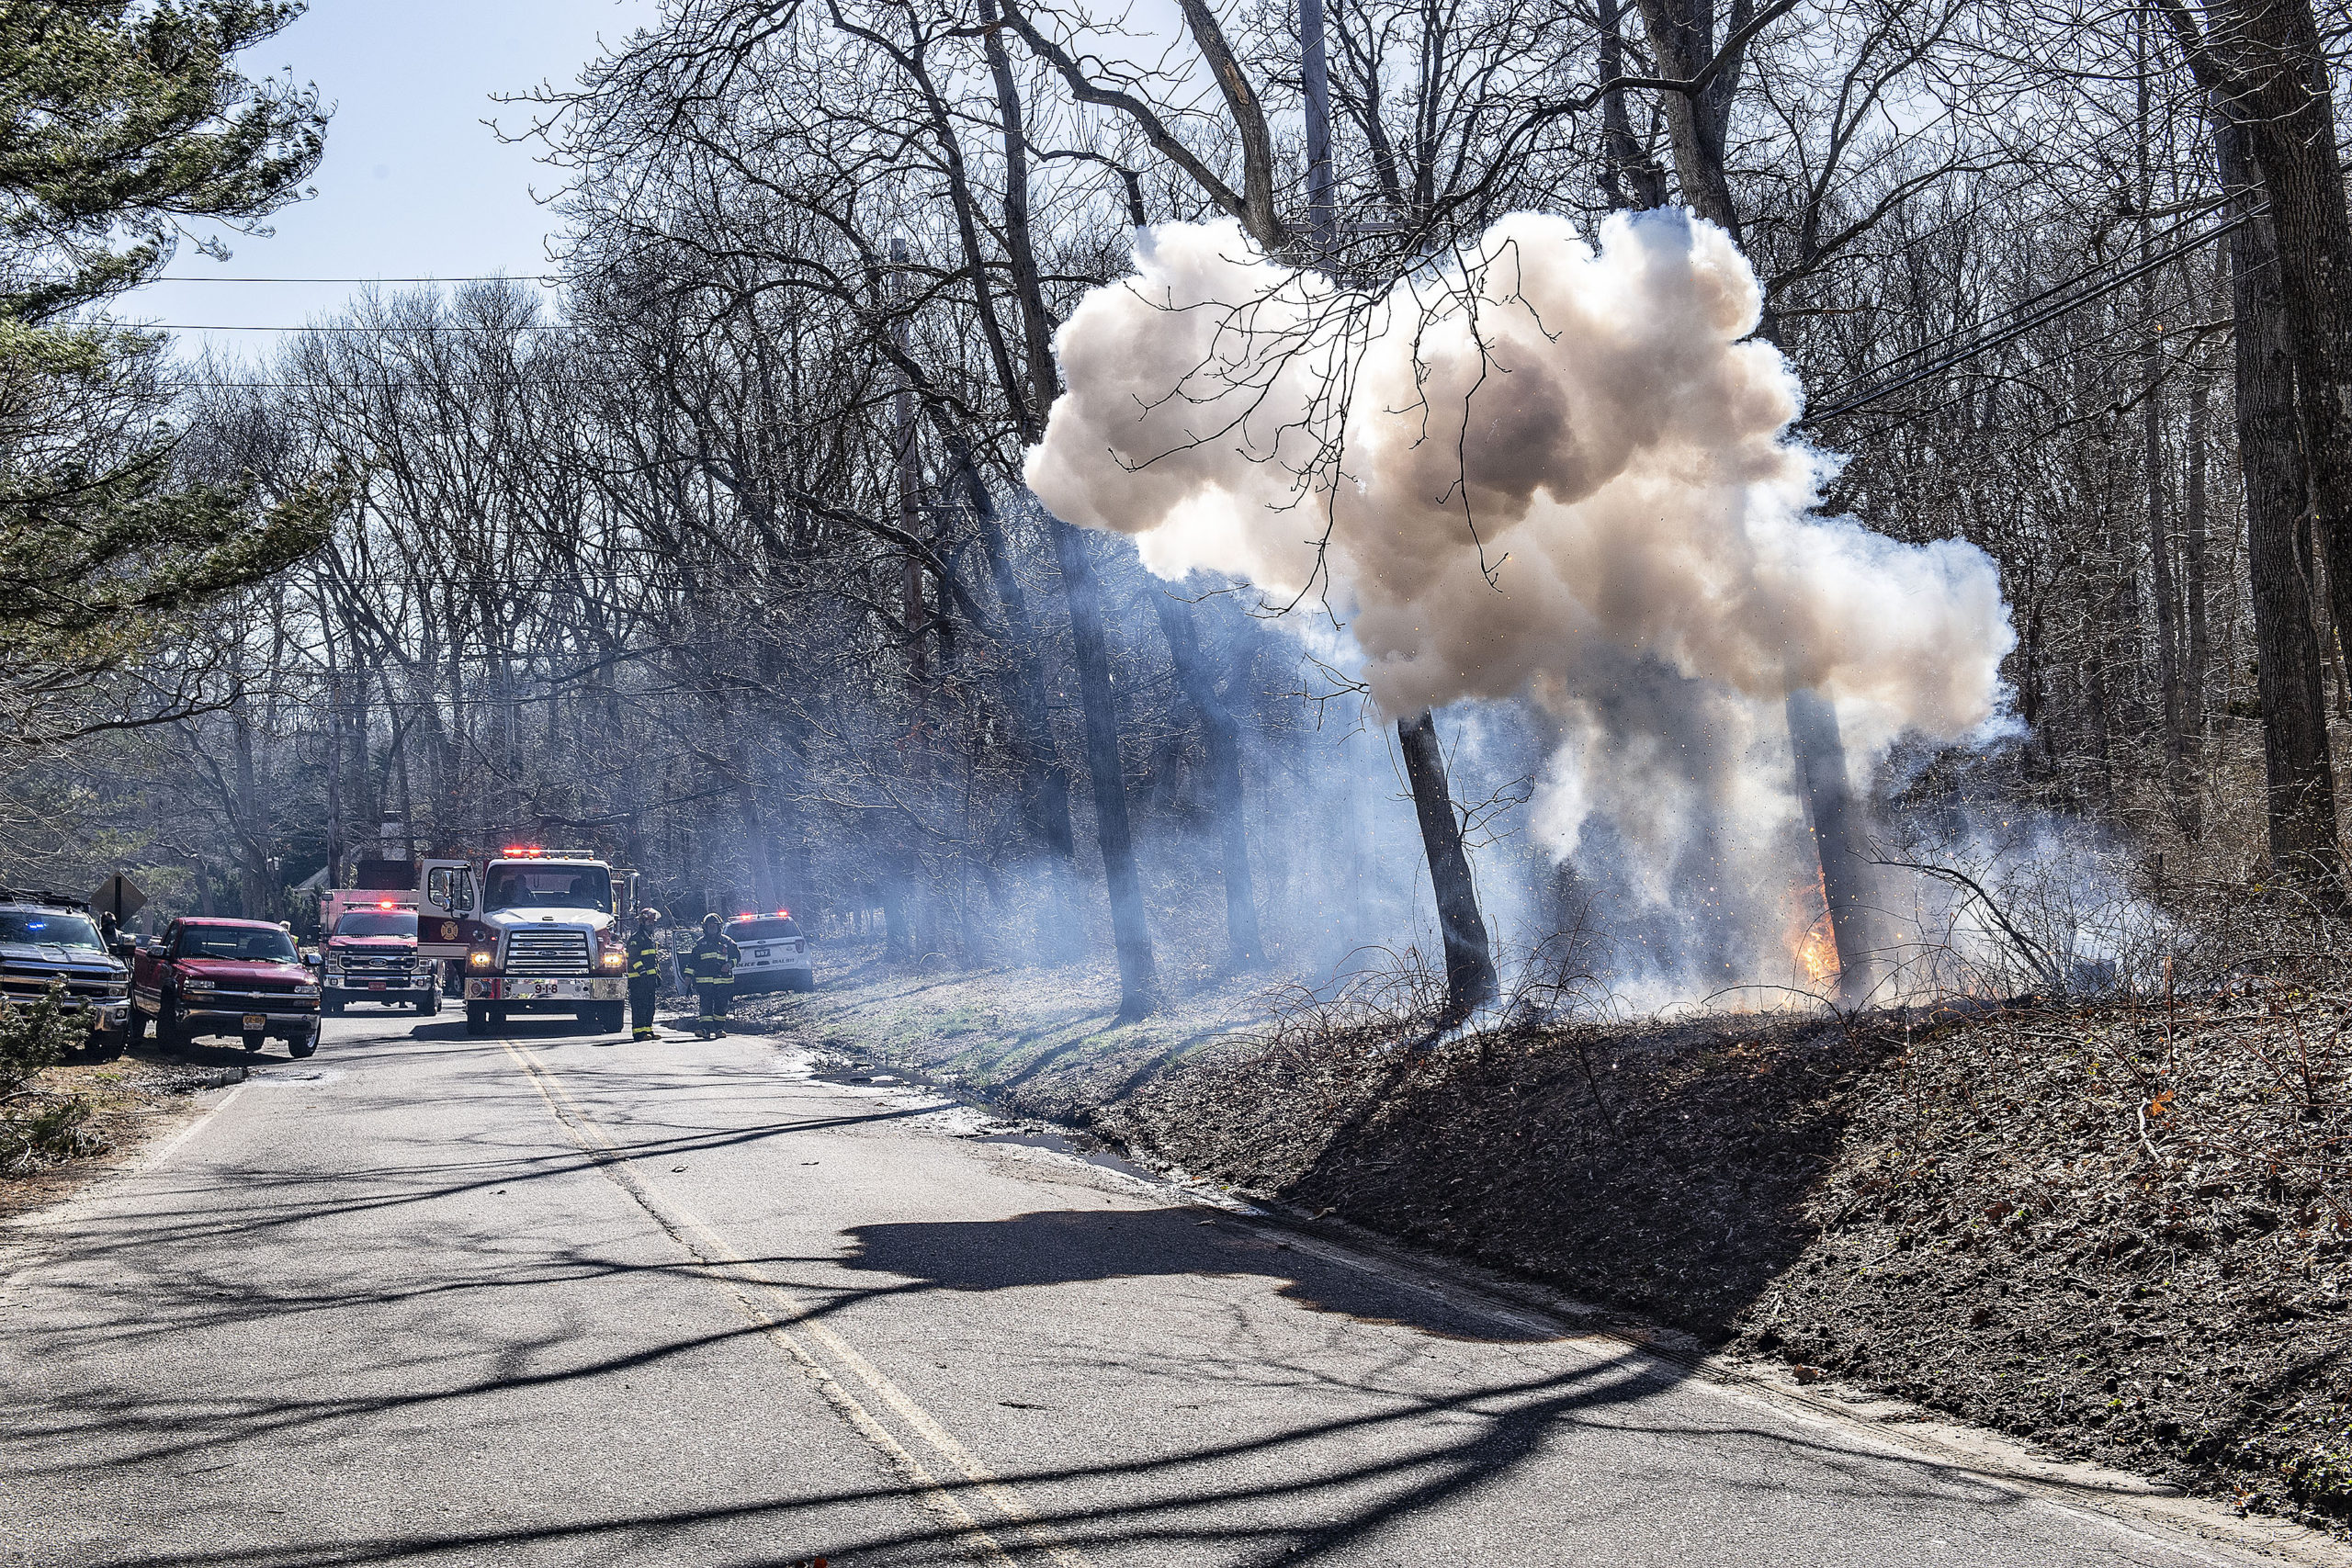 The East Hampton Fire Department stood by on Monday to make sure a brush fire started by downed power lines on Buell Lane didn't spread.